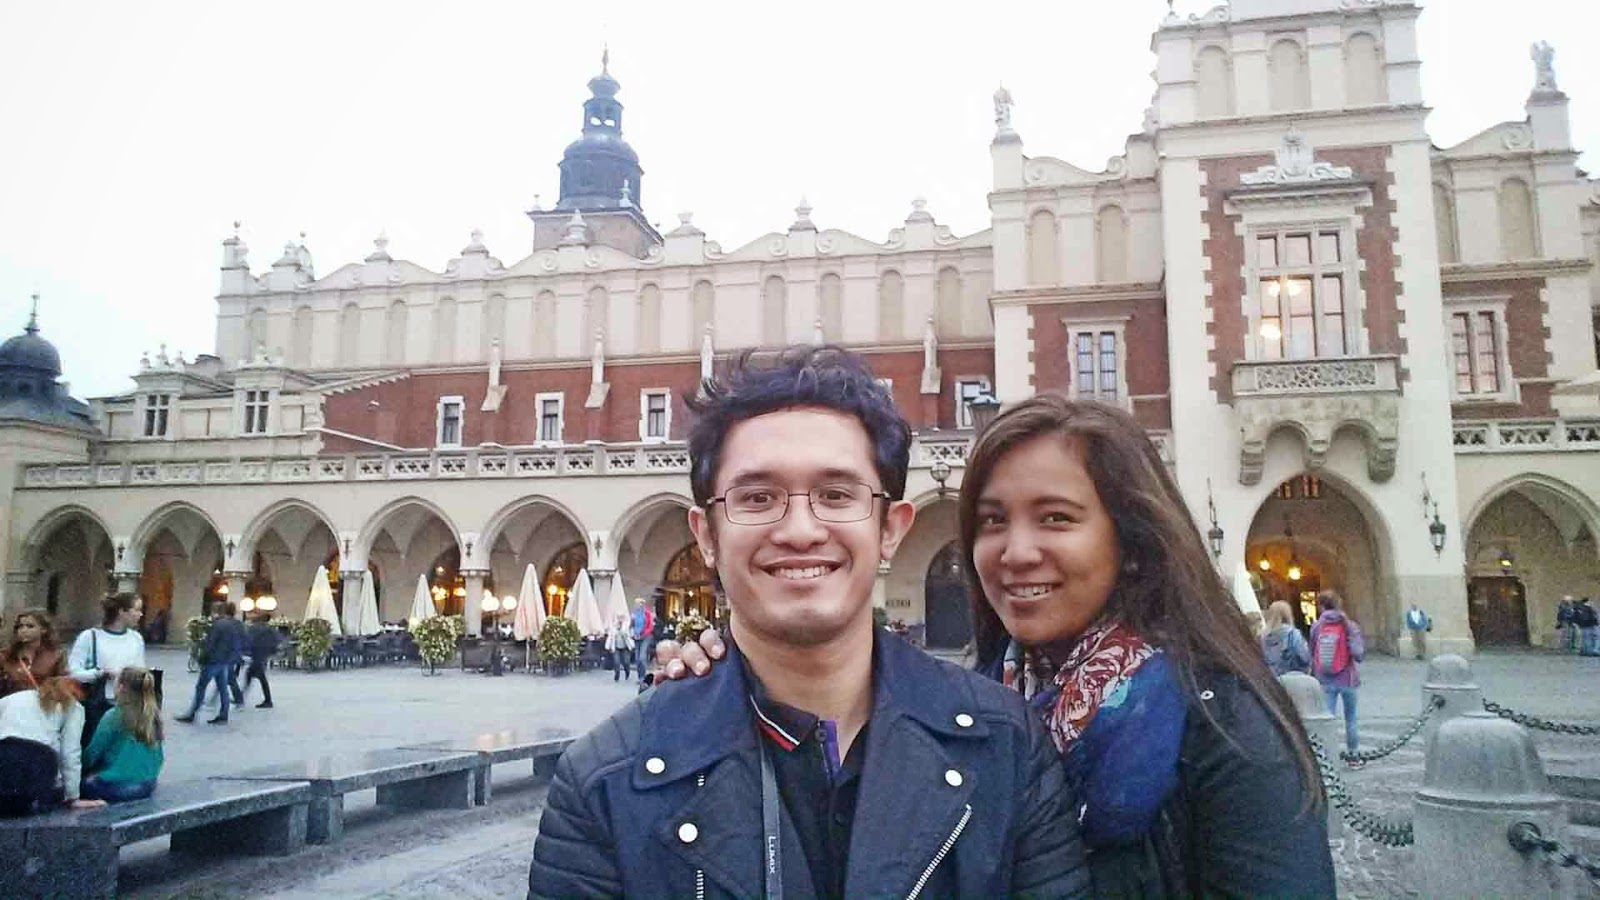 Selfie at Krakow Market Square